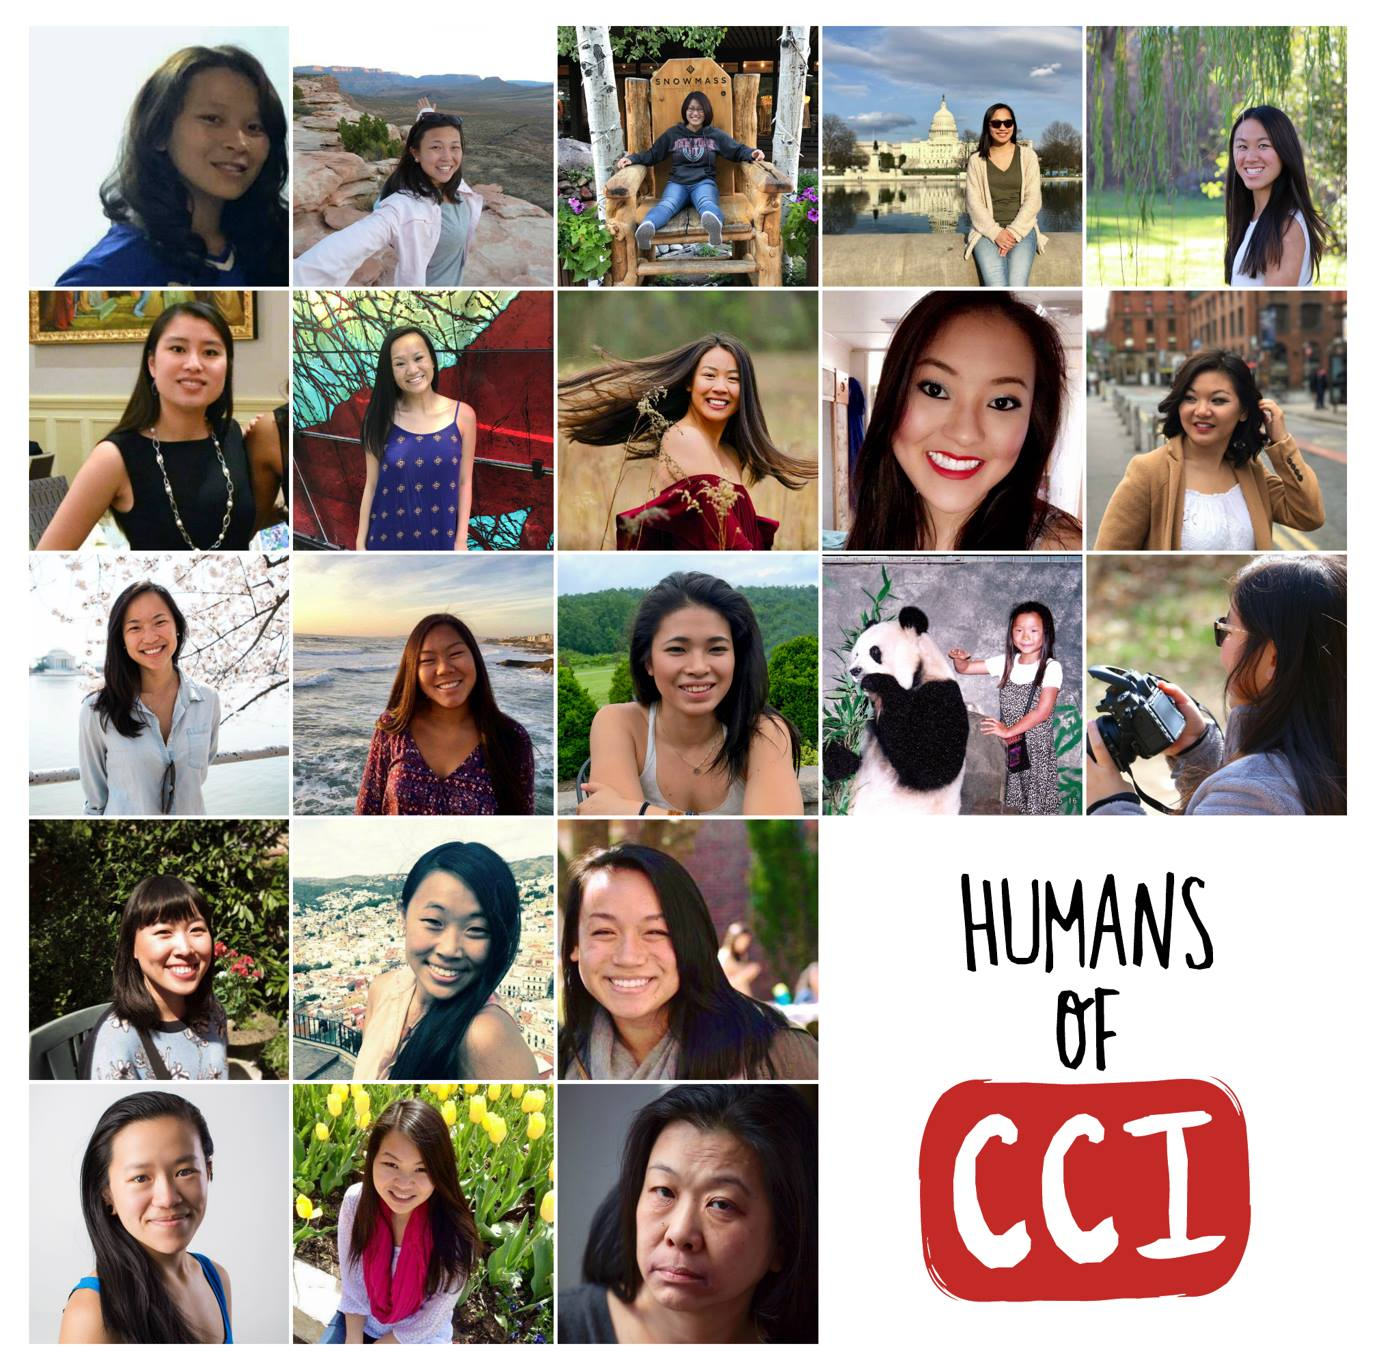 Humans of CCI